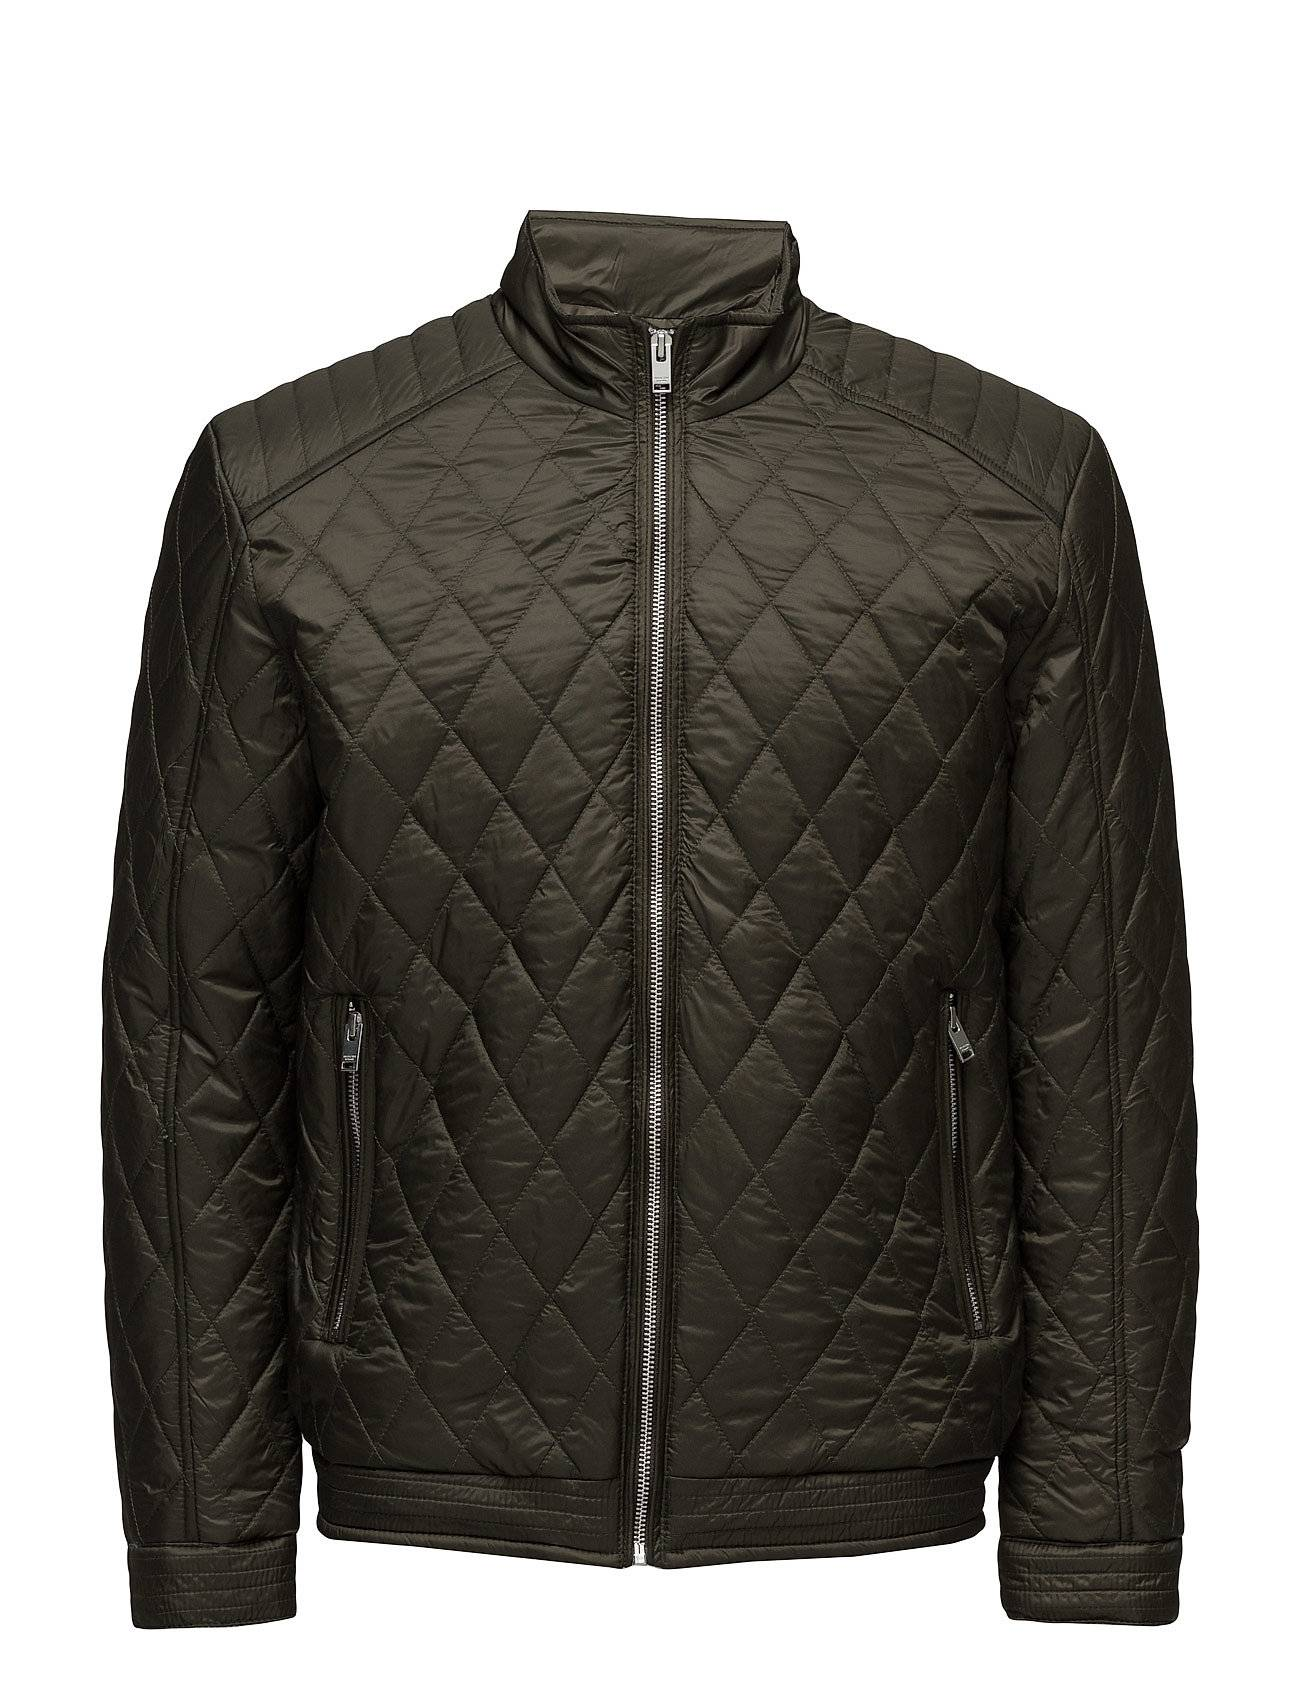 Selected Homme Shxbarto Quilted Bomber Jacket